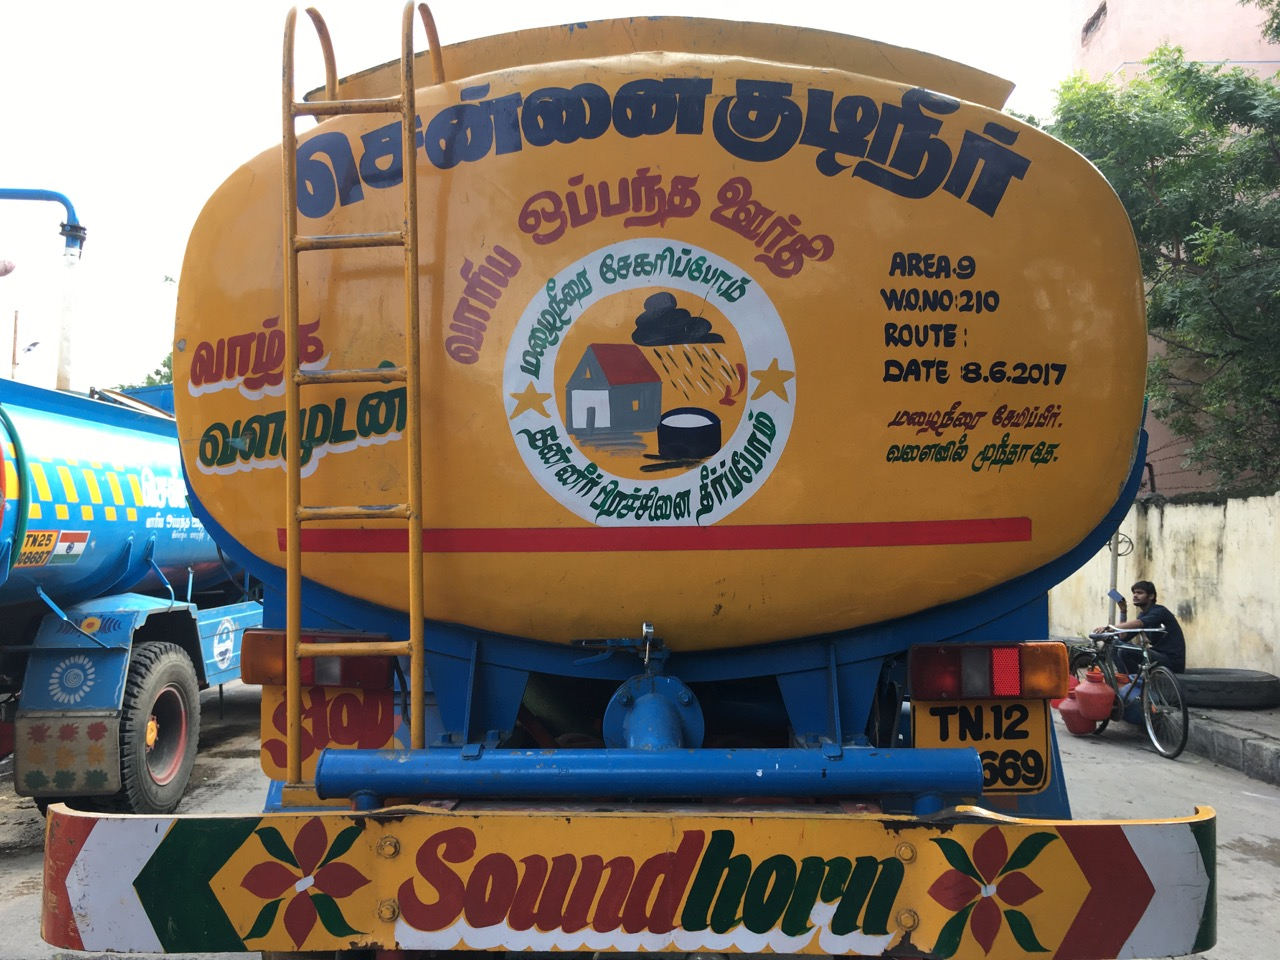 In Chennai, India, water trucks deliver water to people unconnected to city water and to connected people when city water runs dry. This is becoming a common practices in many places around the world. Photo by Erica Gies.